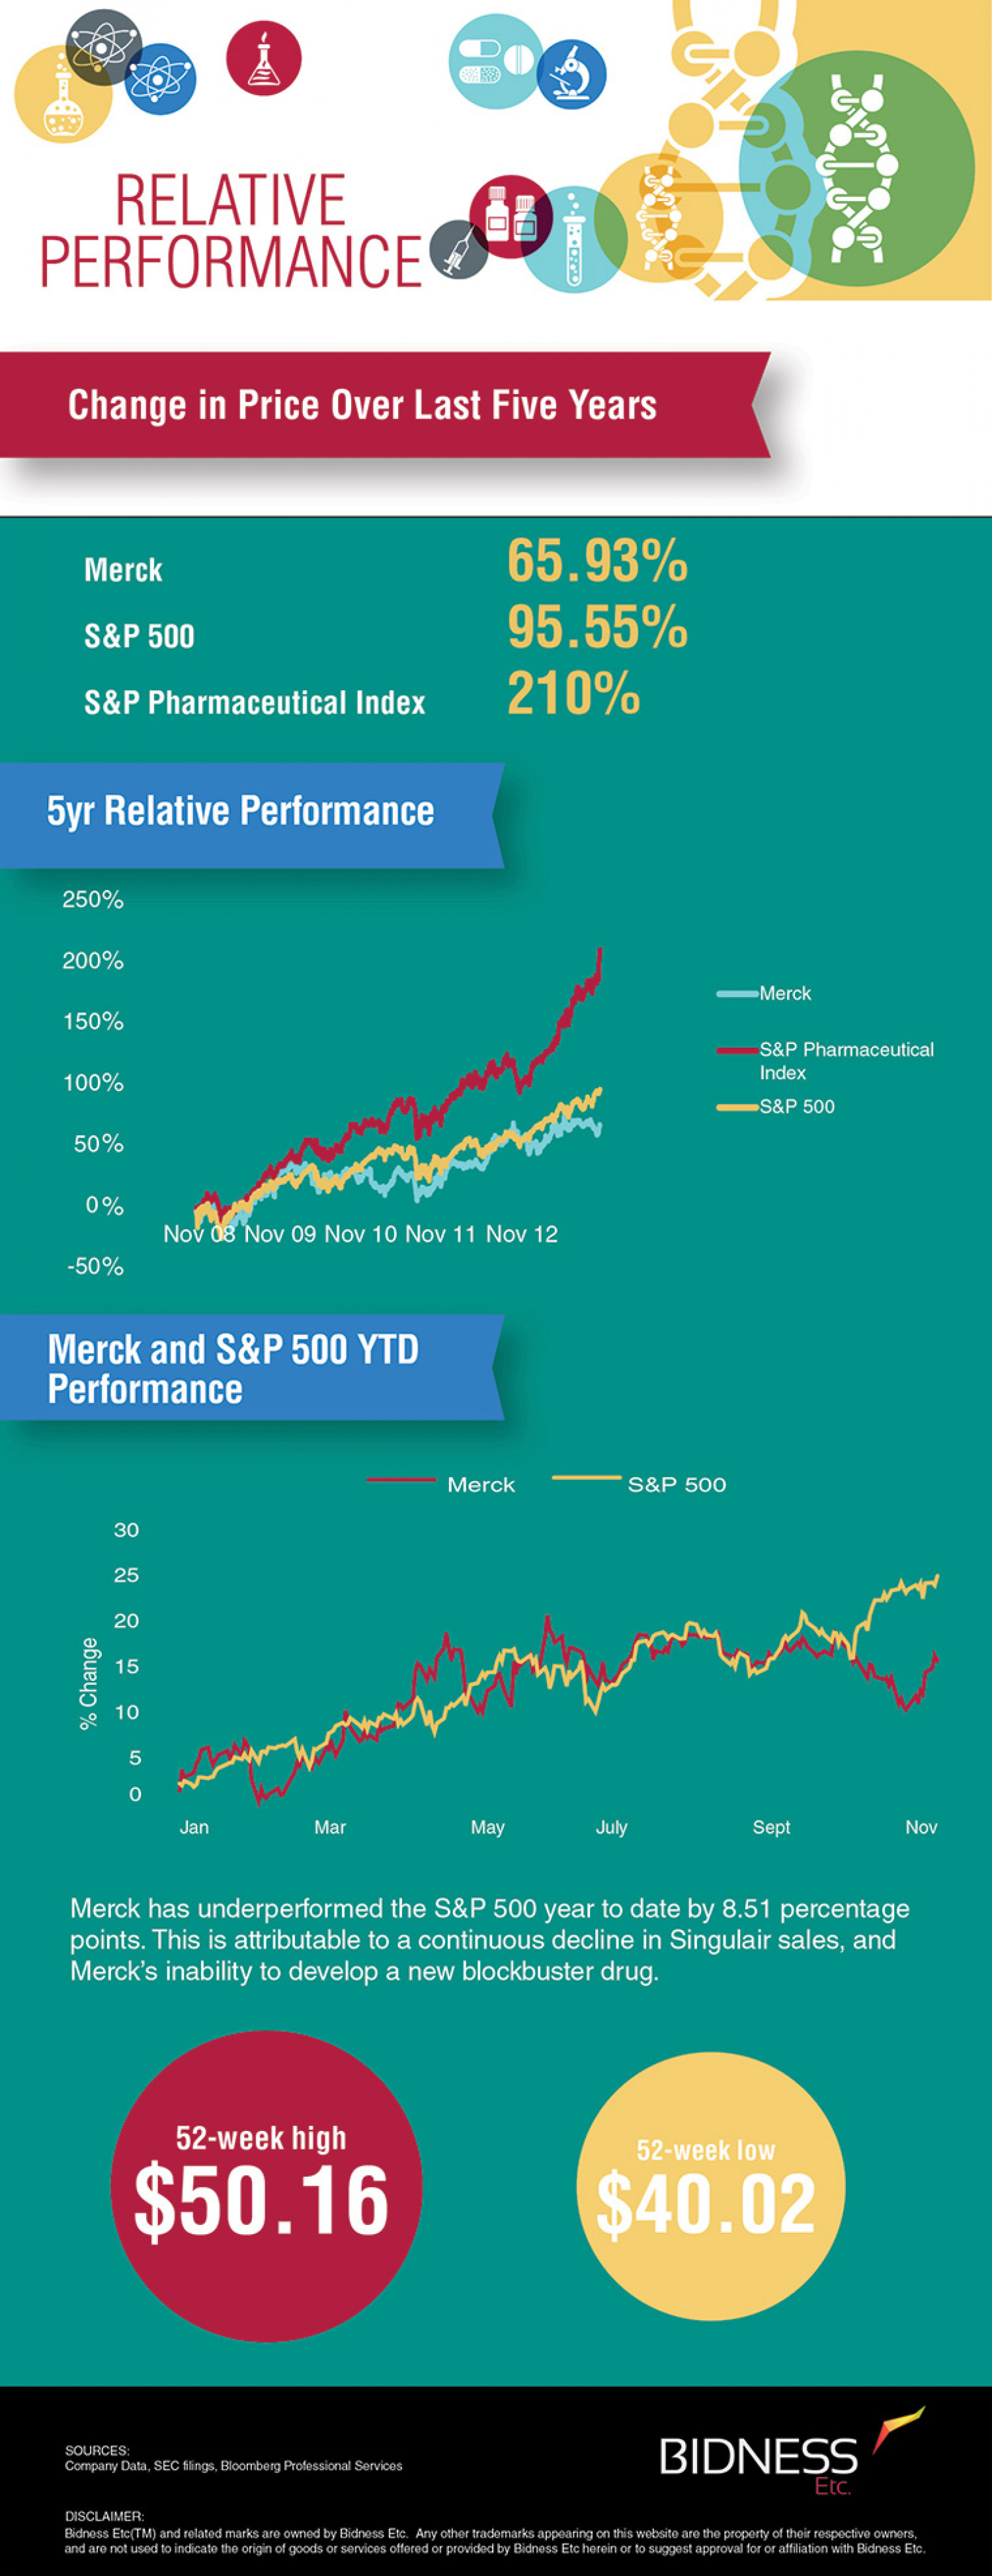 Merck (MRK) Relative Performance Infographic